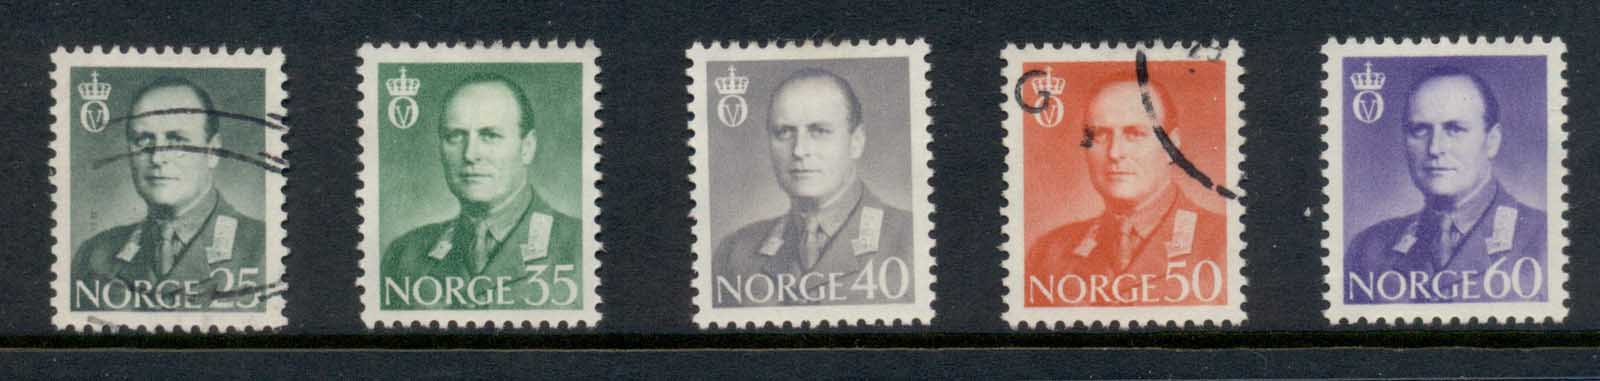 Norway 1962 King Olav MLH/FU